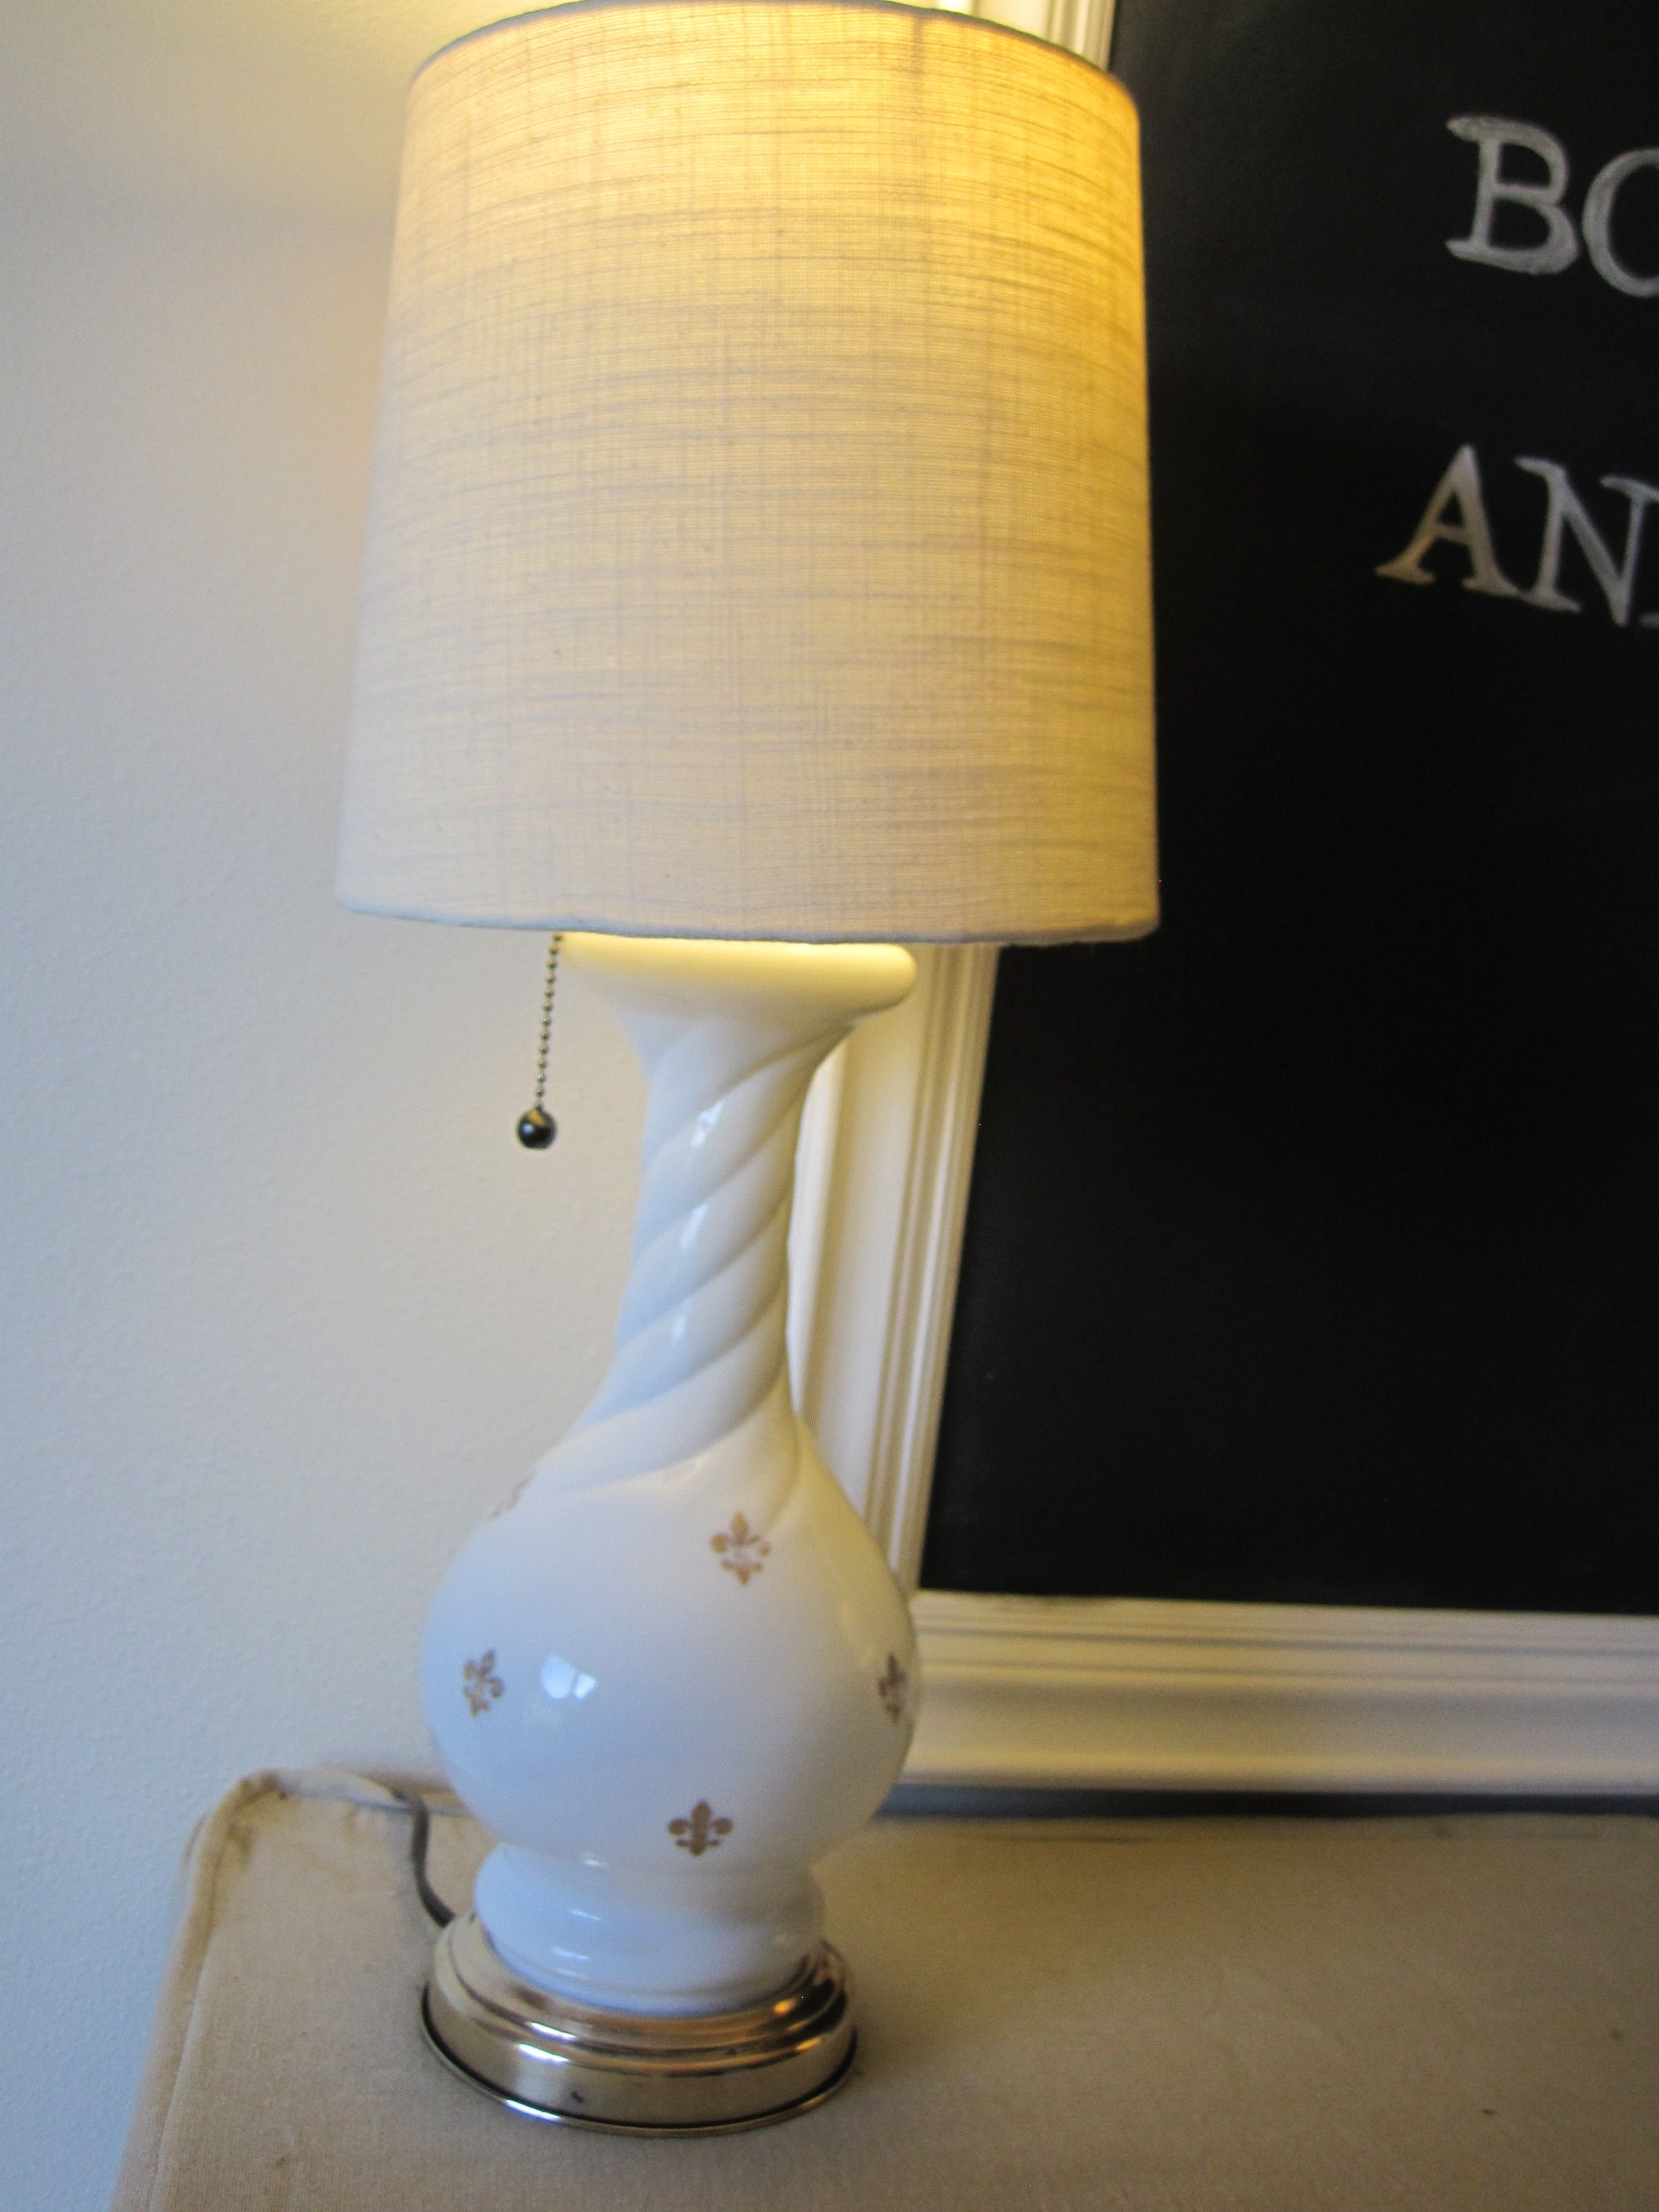 Refurbished milk glass table lamp with fleur de lis embellishments refurbished milk glass table lamp with fleur de lis embellishments geotapseo Gallery